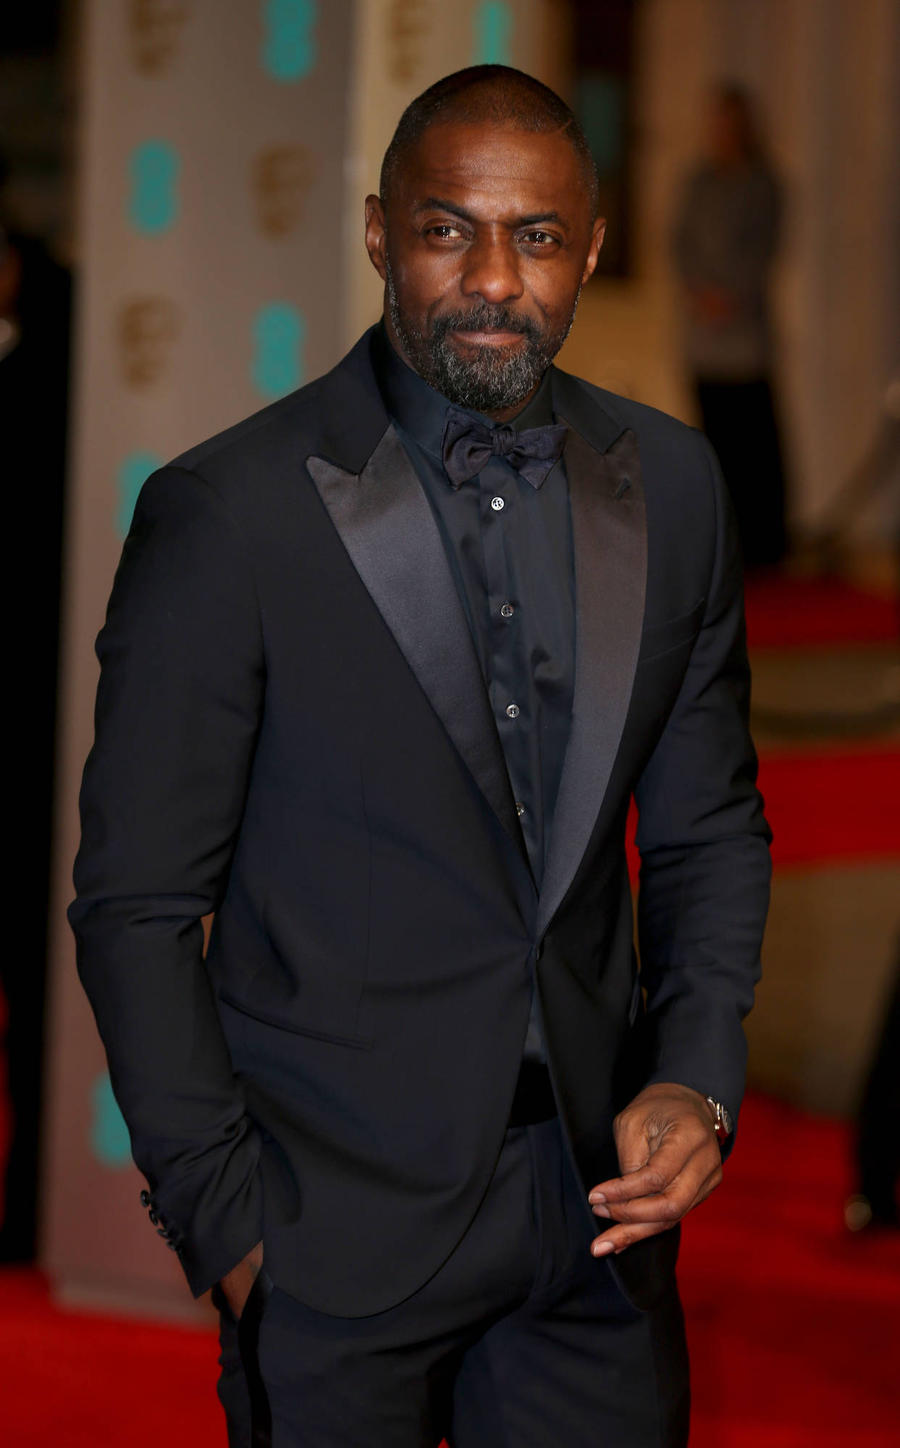 Idris Elba: 'I Haven't Spoken To Anyone Official About 007'